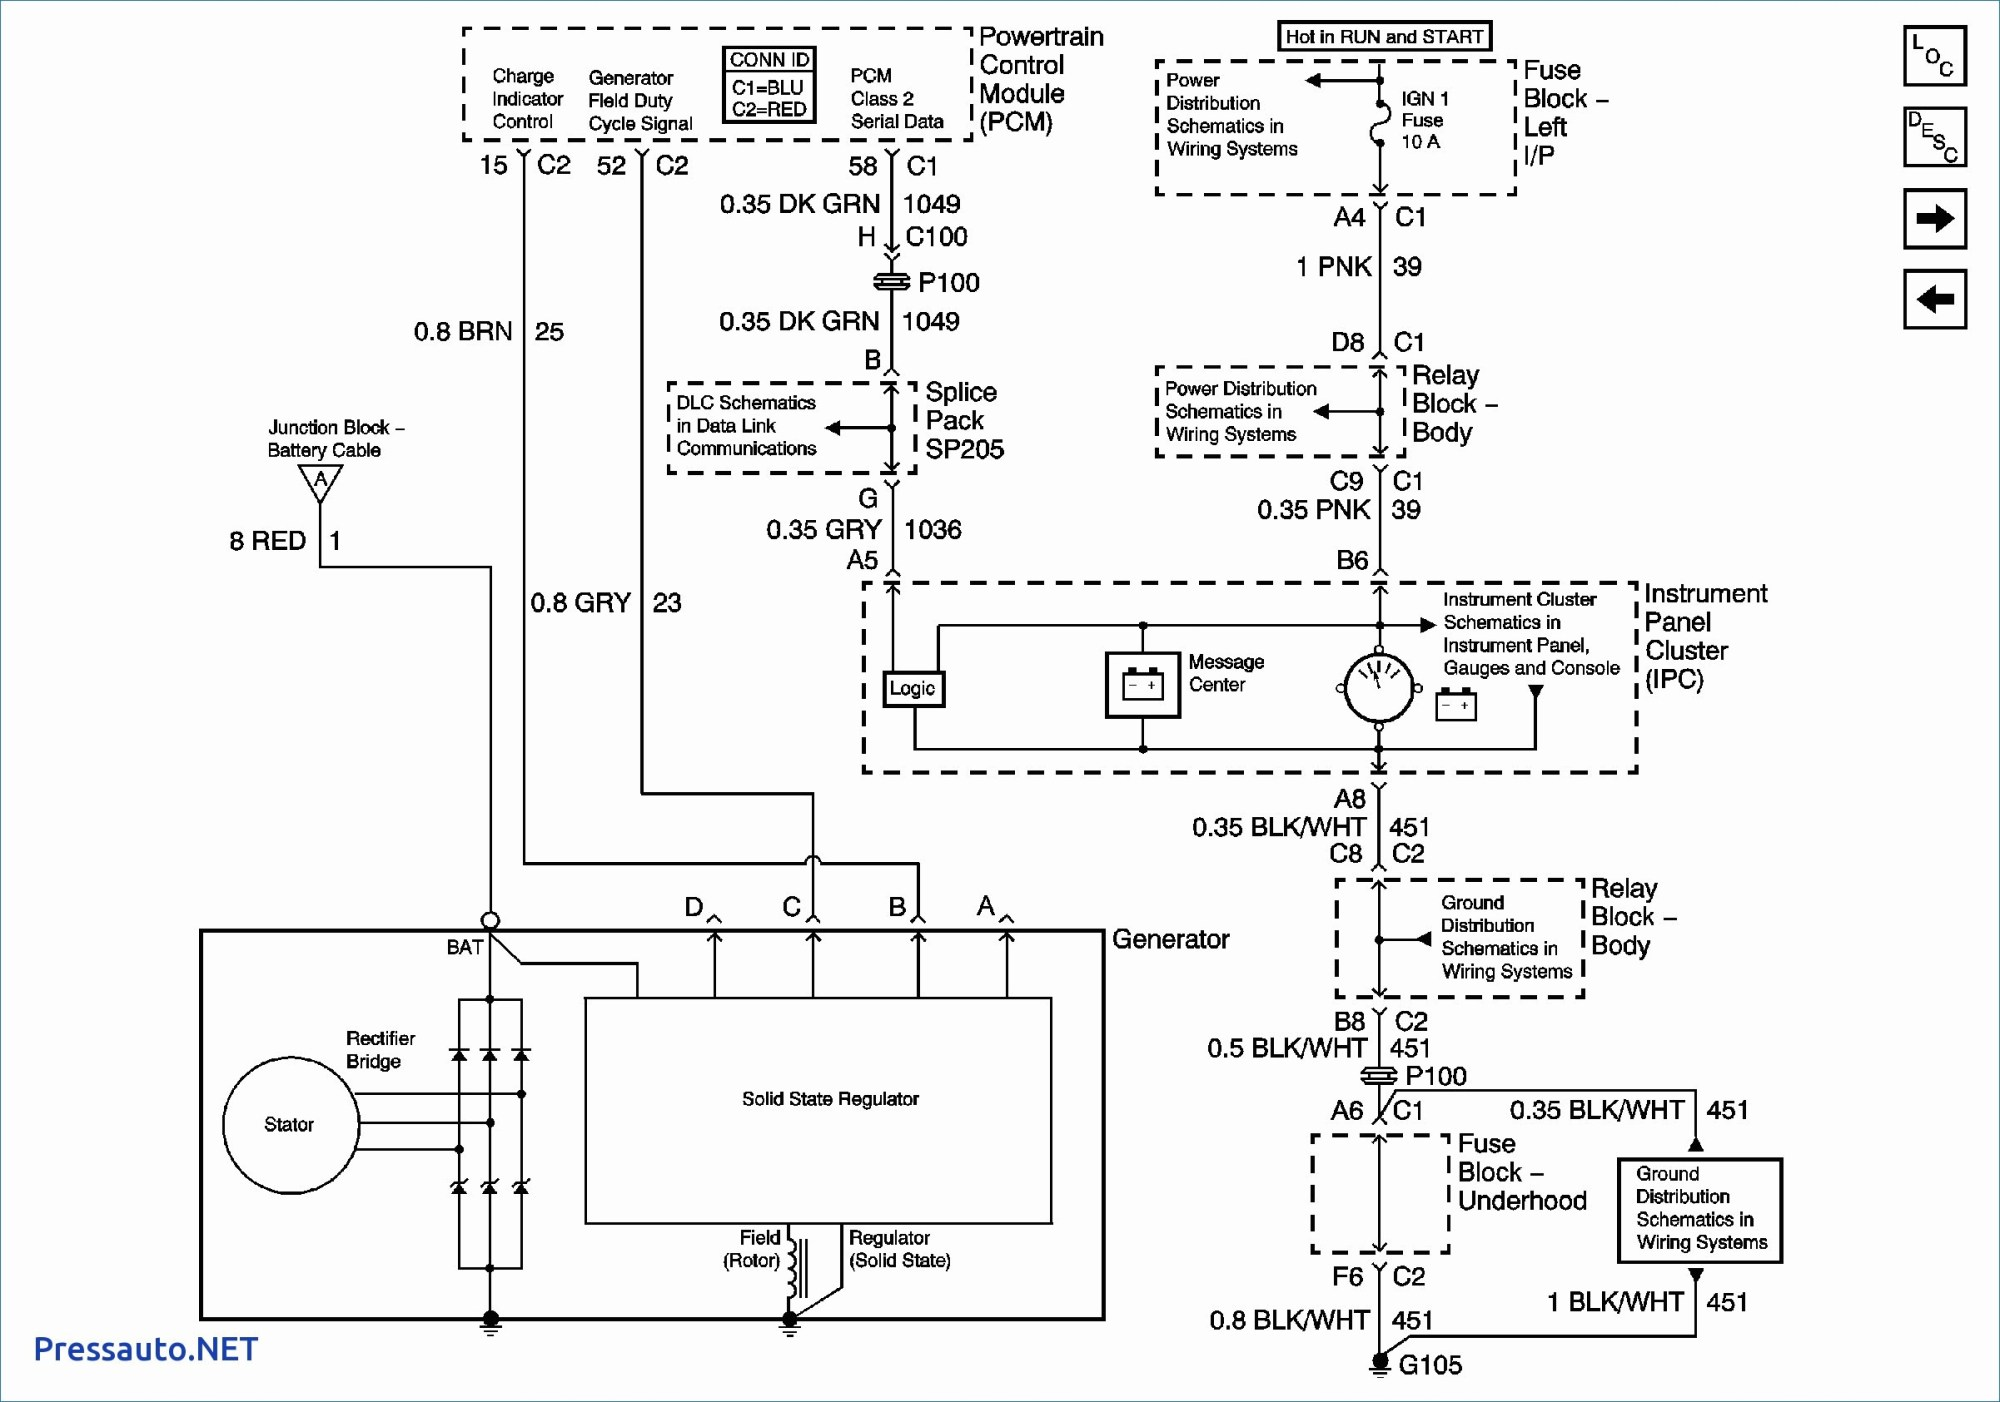 hight resolution of dw705 wiring diagram wiring diagrams dw705 wiring diagram wiring diagrams de walt dw705 miter saw dodge